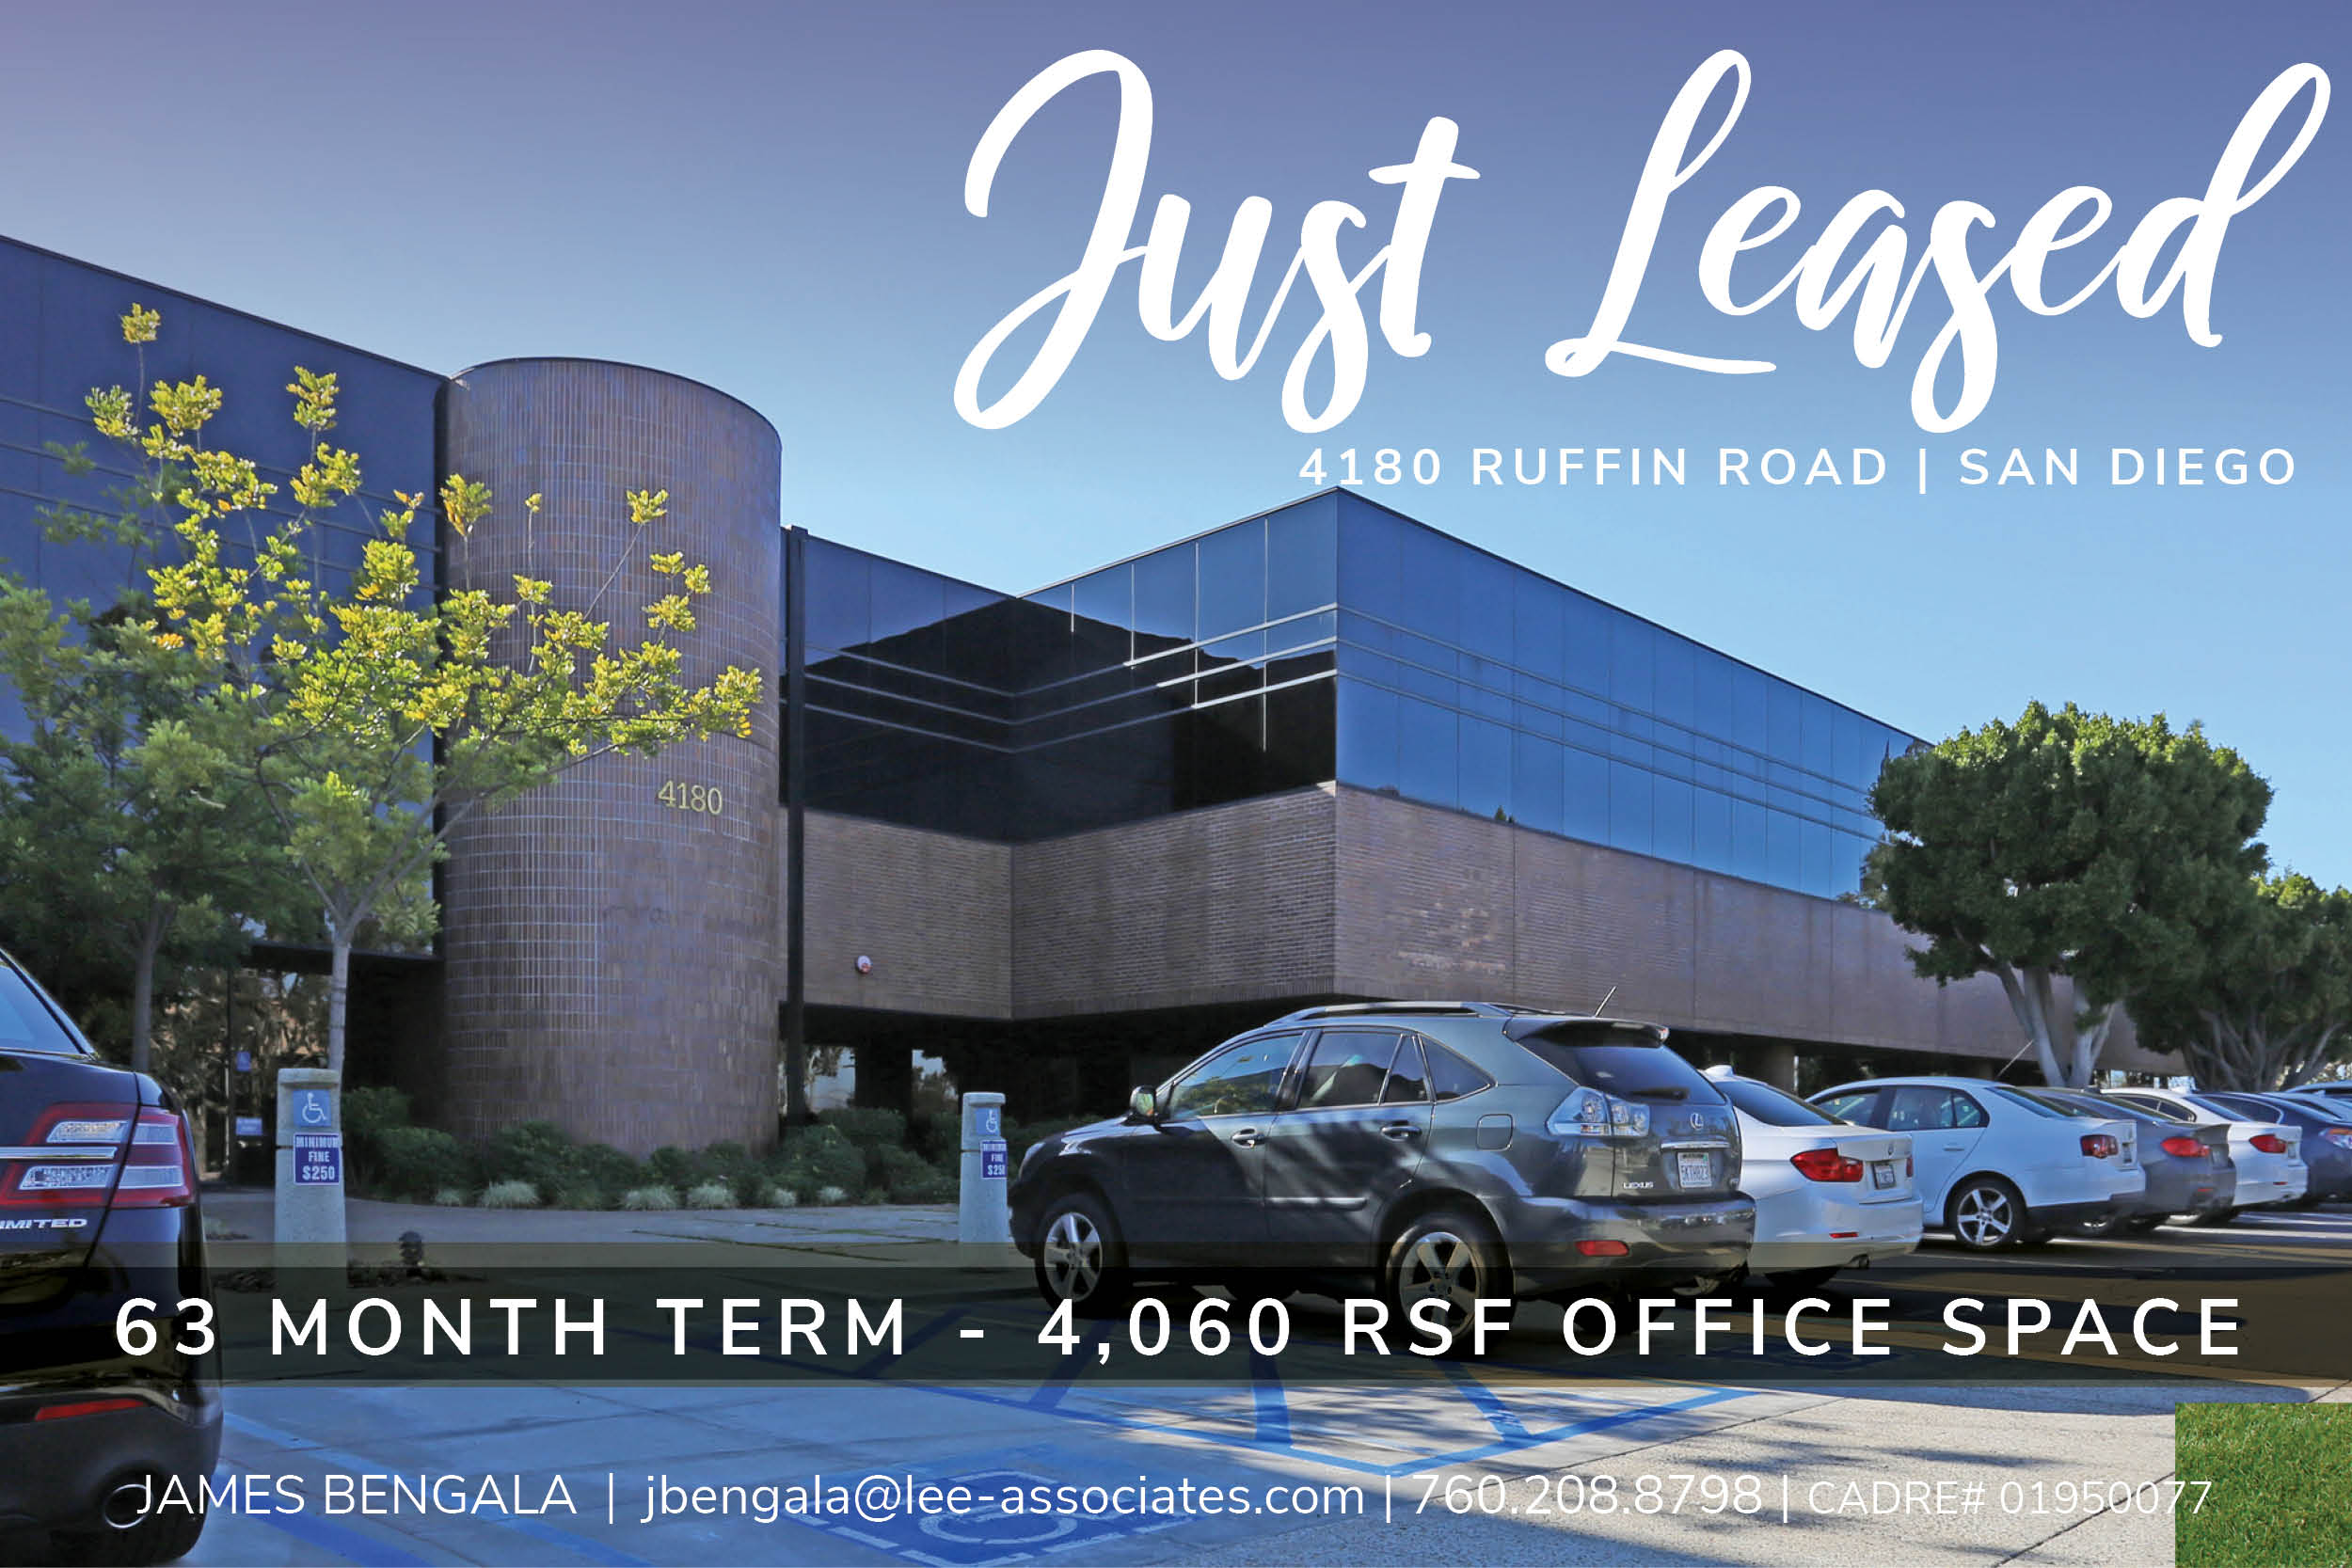 Just Leased - 4180 Ruffin Rd